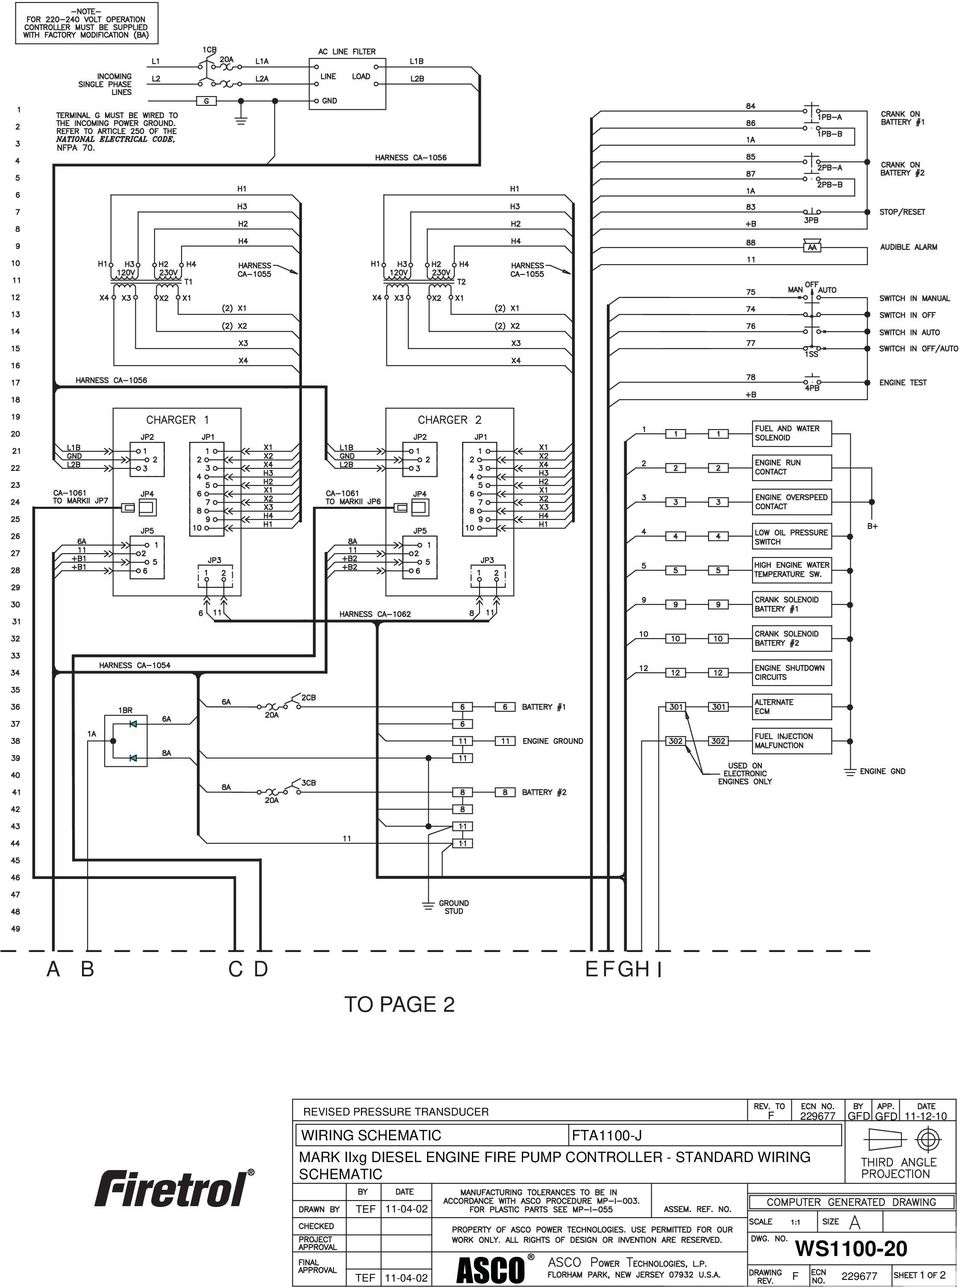 Fta1100 J Diesel Engine Fire Pump Controllers Standard Submittal Wiring Diagram Iixg Controller